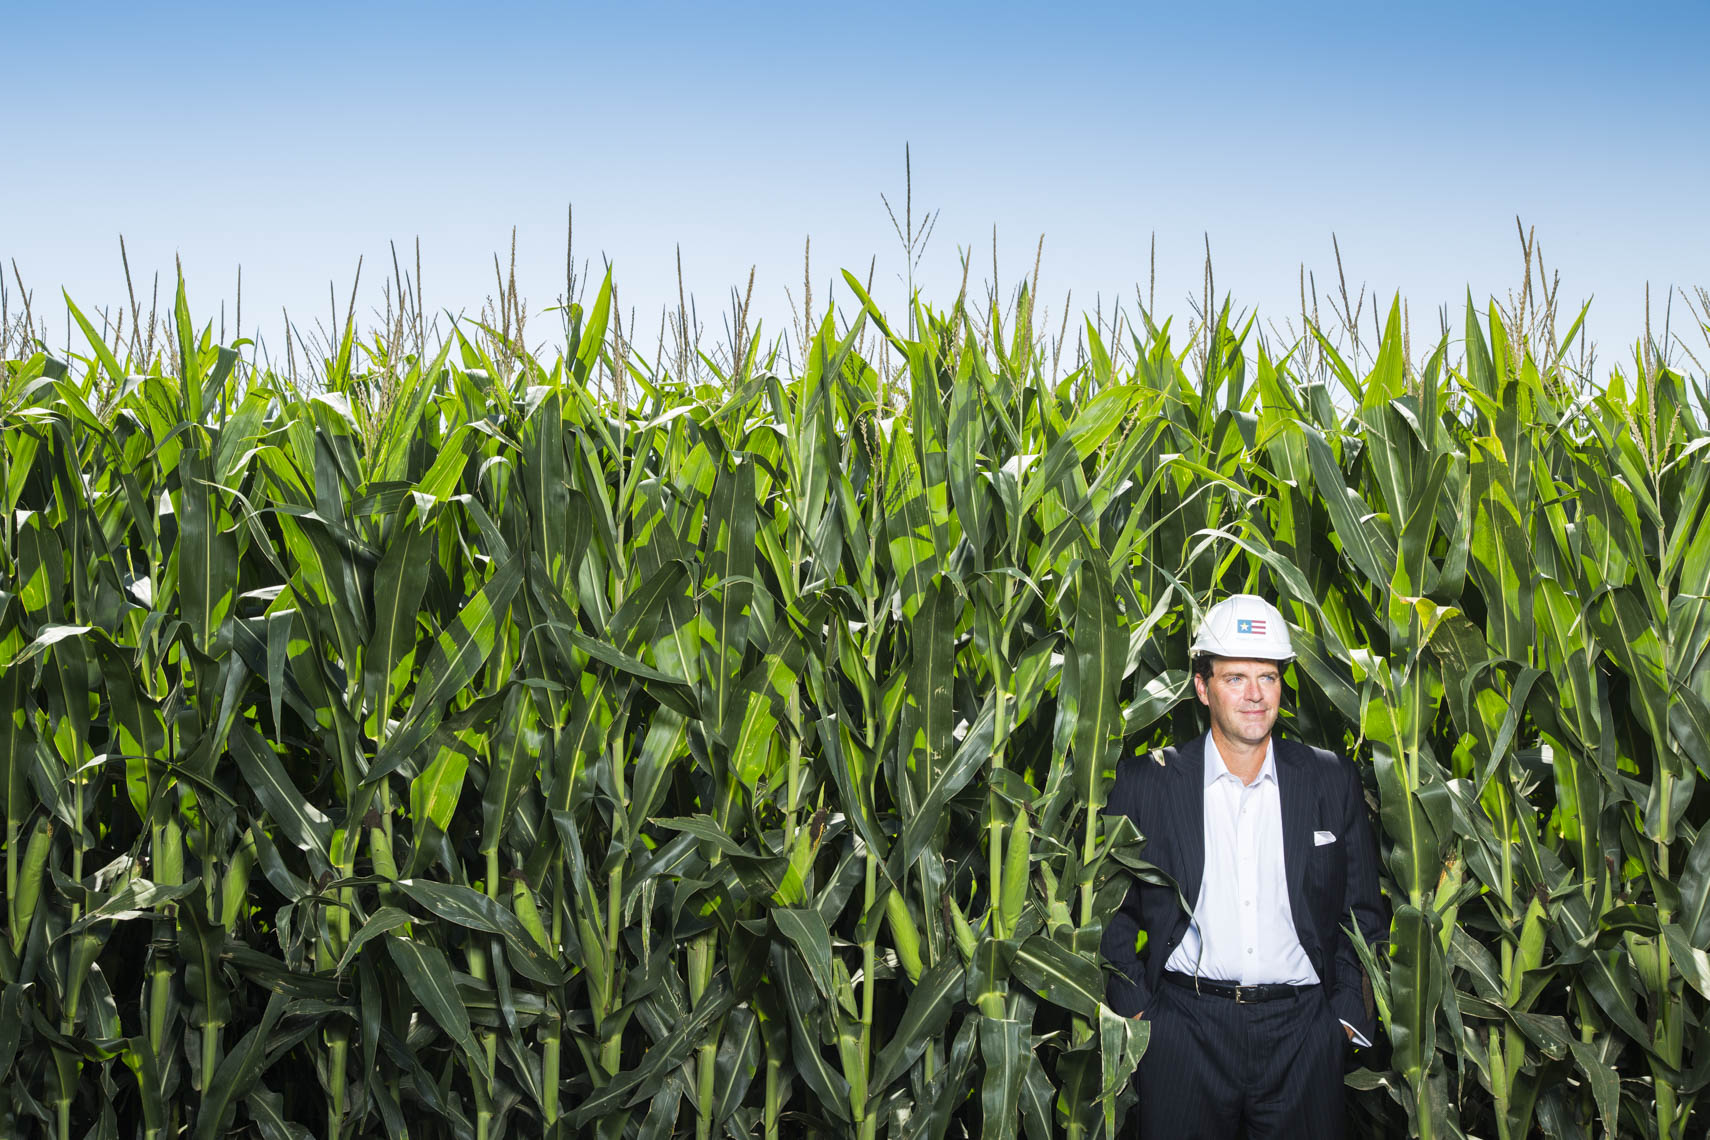 Environmental portrait of Hugh Welsh, General Counsel & President of Royal DSM North America taken at the Project Liberty ethanol production site in Emmetsburg, Iowa